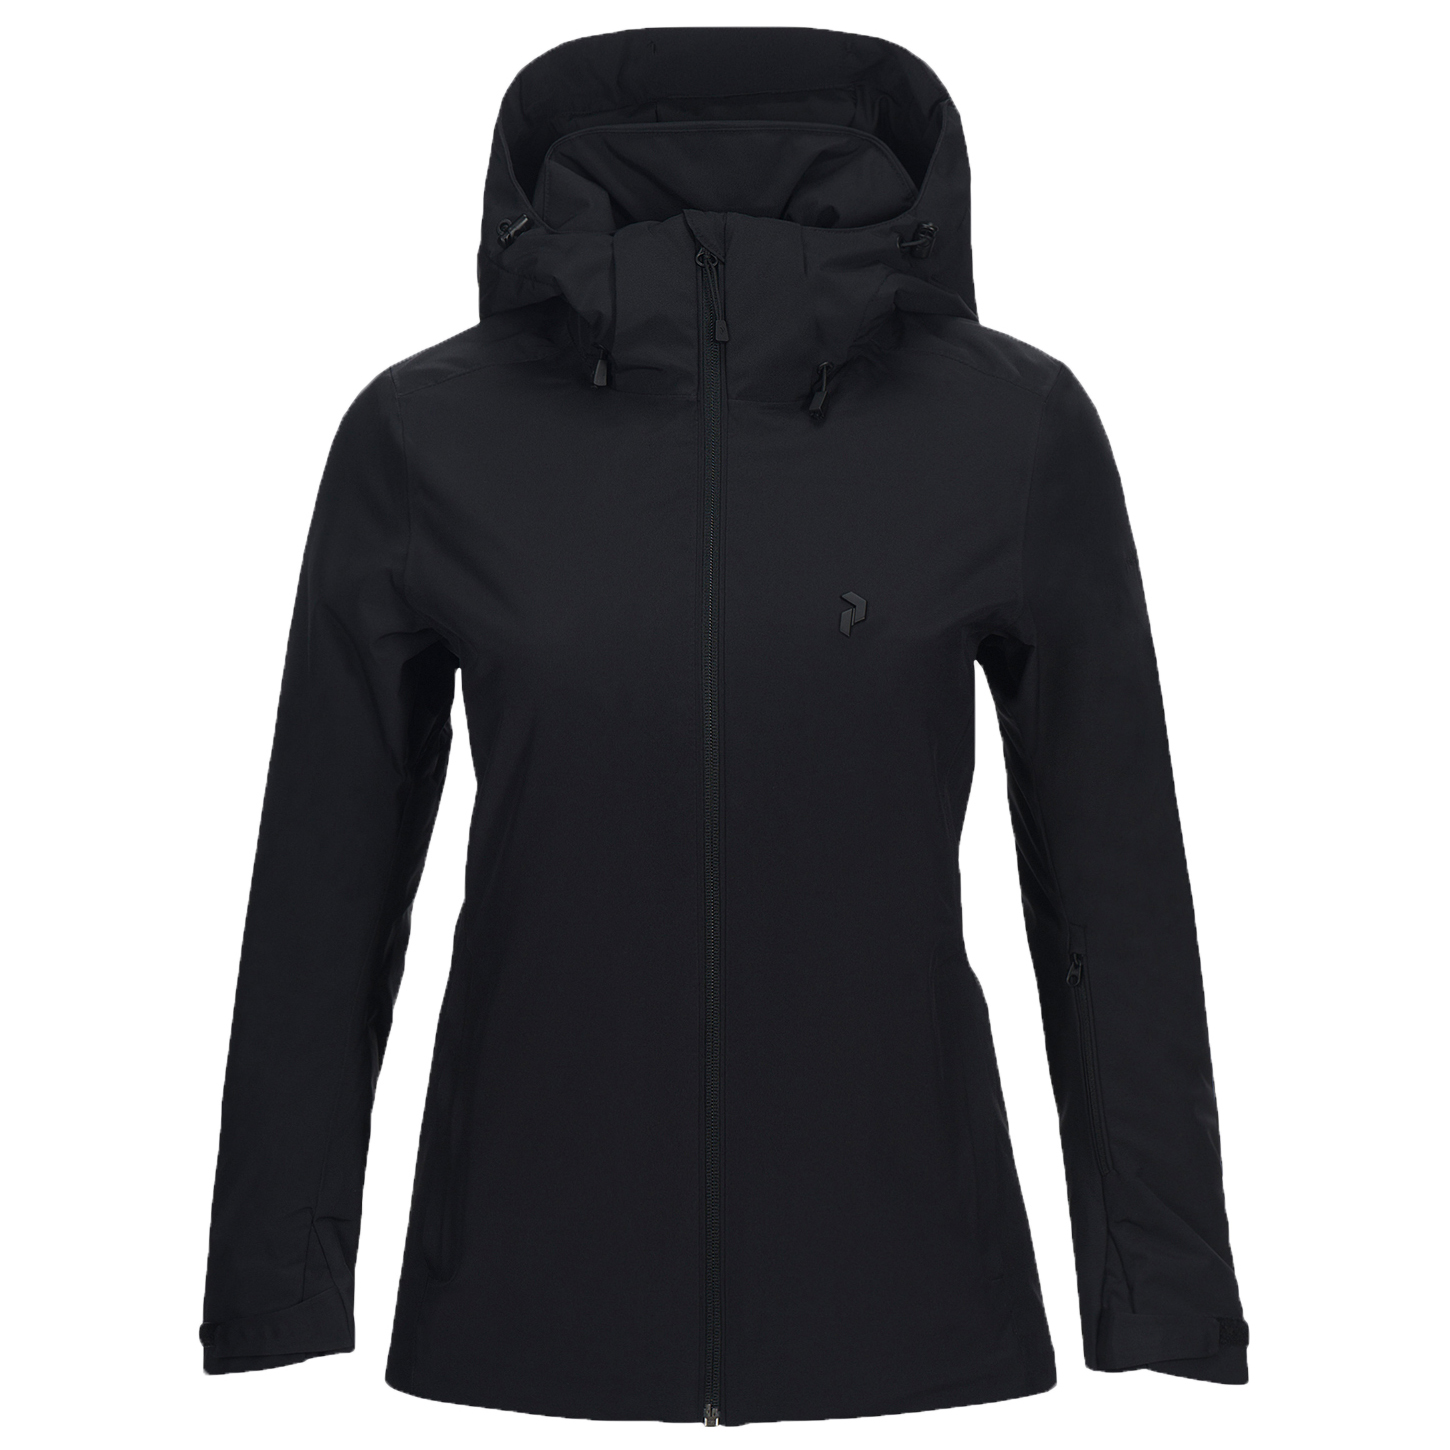 Jacket Women's EU Performance jacket Free Ski Anima Peak AUTqgwHn